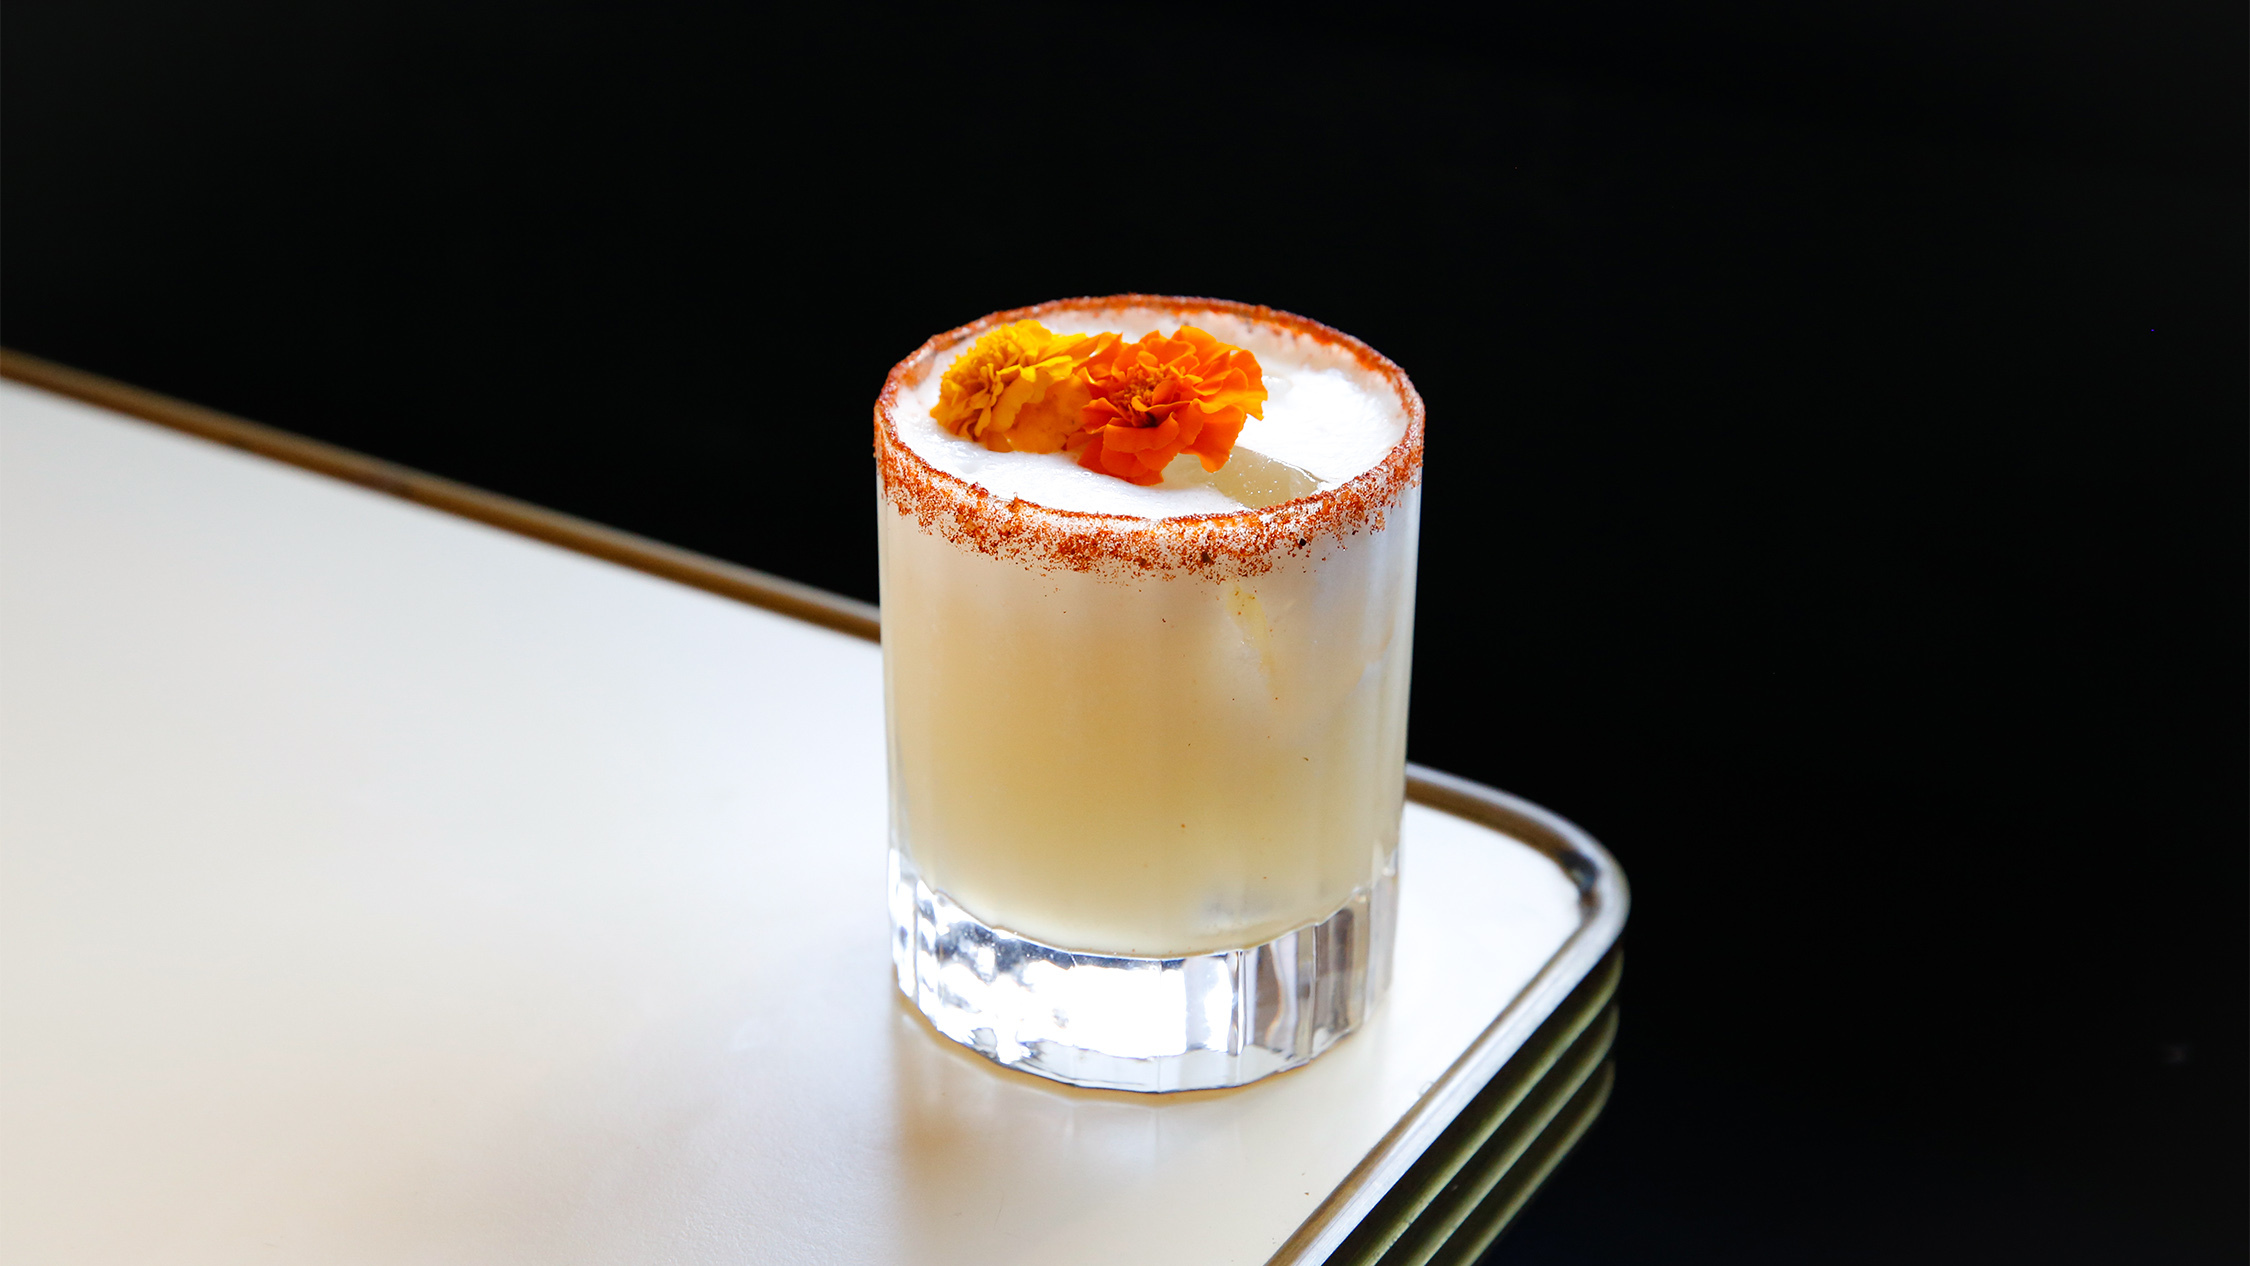 A while cocktail containing orange flowers on top sitting on the